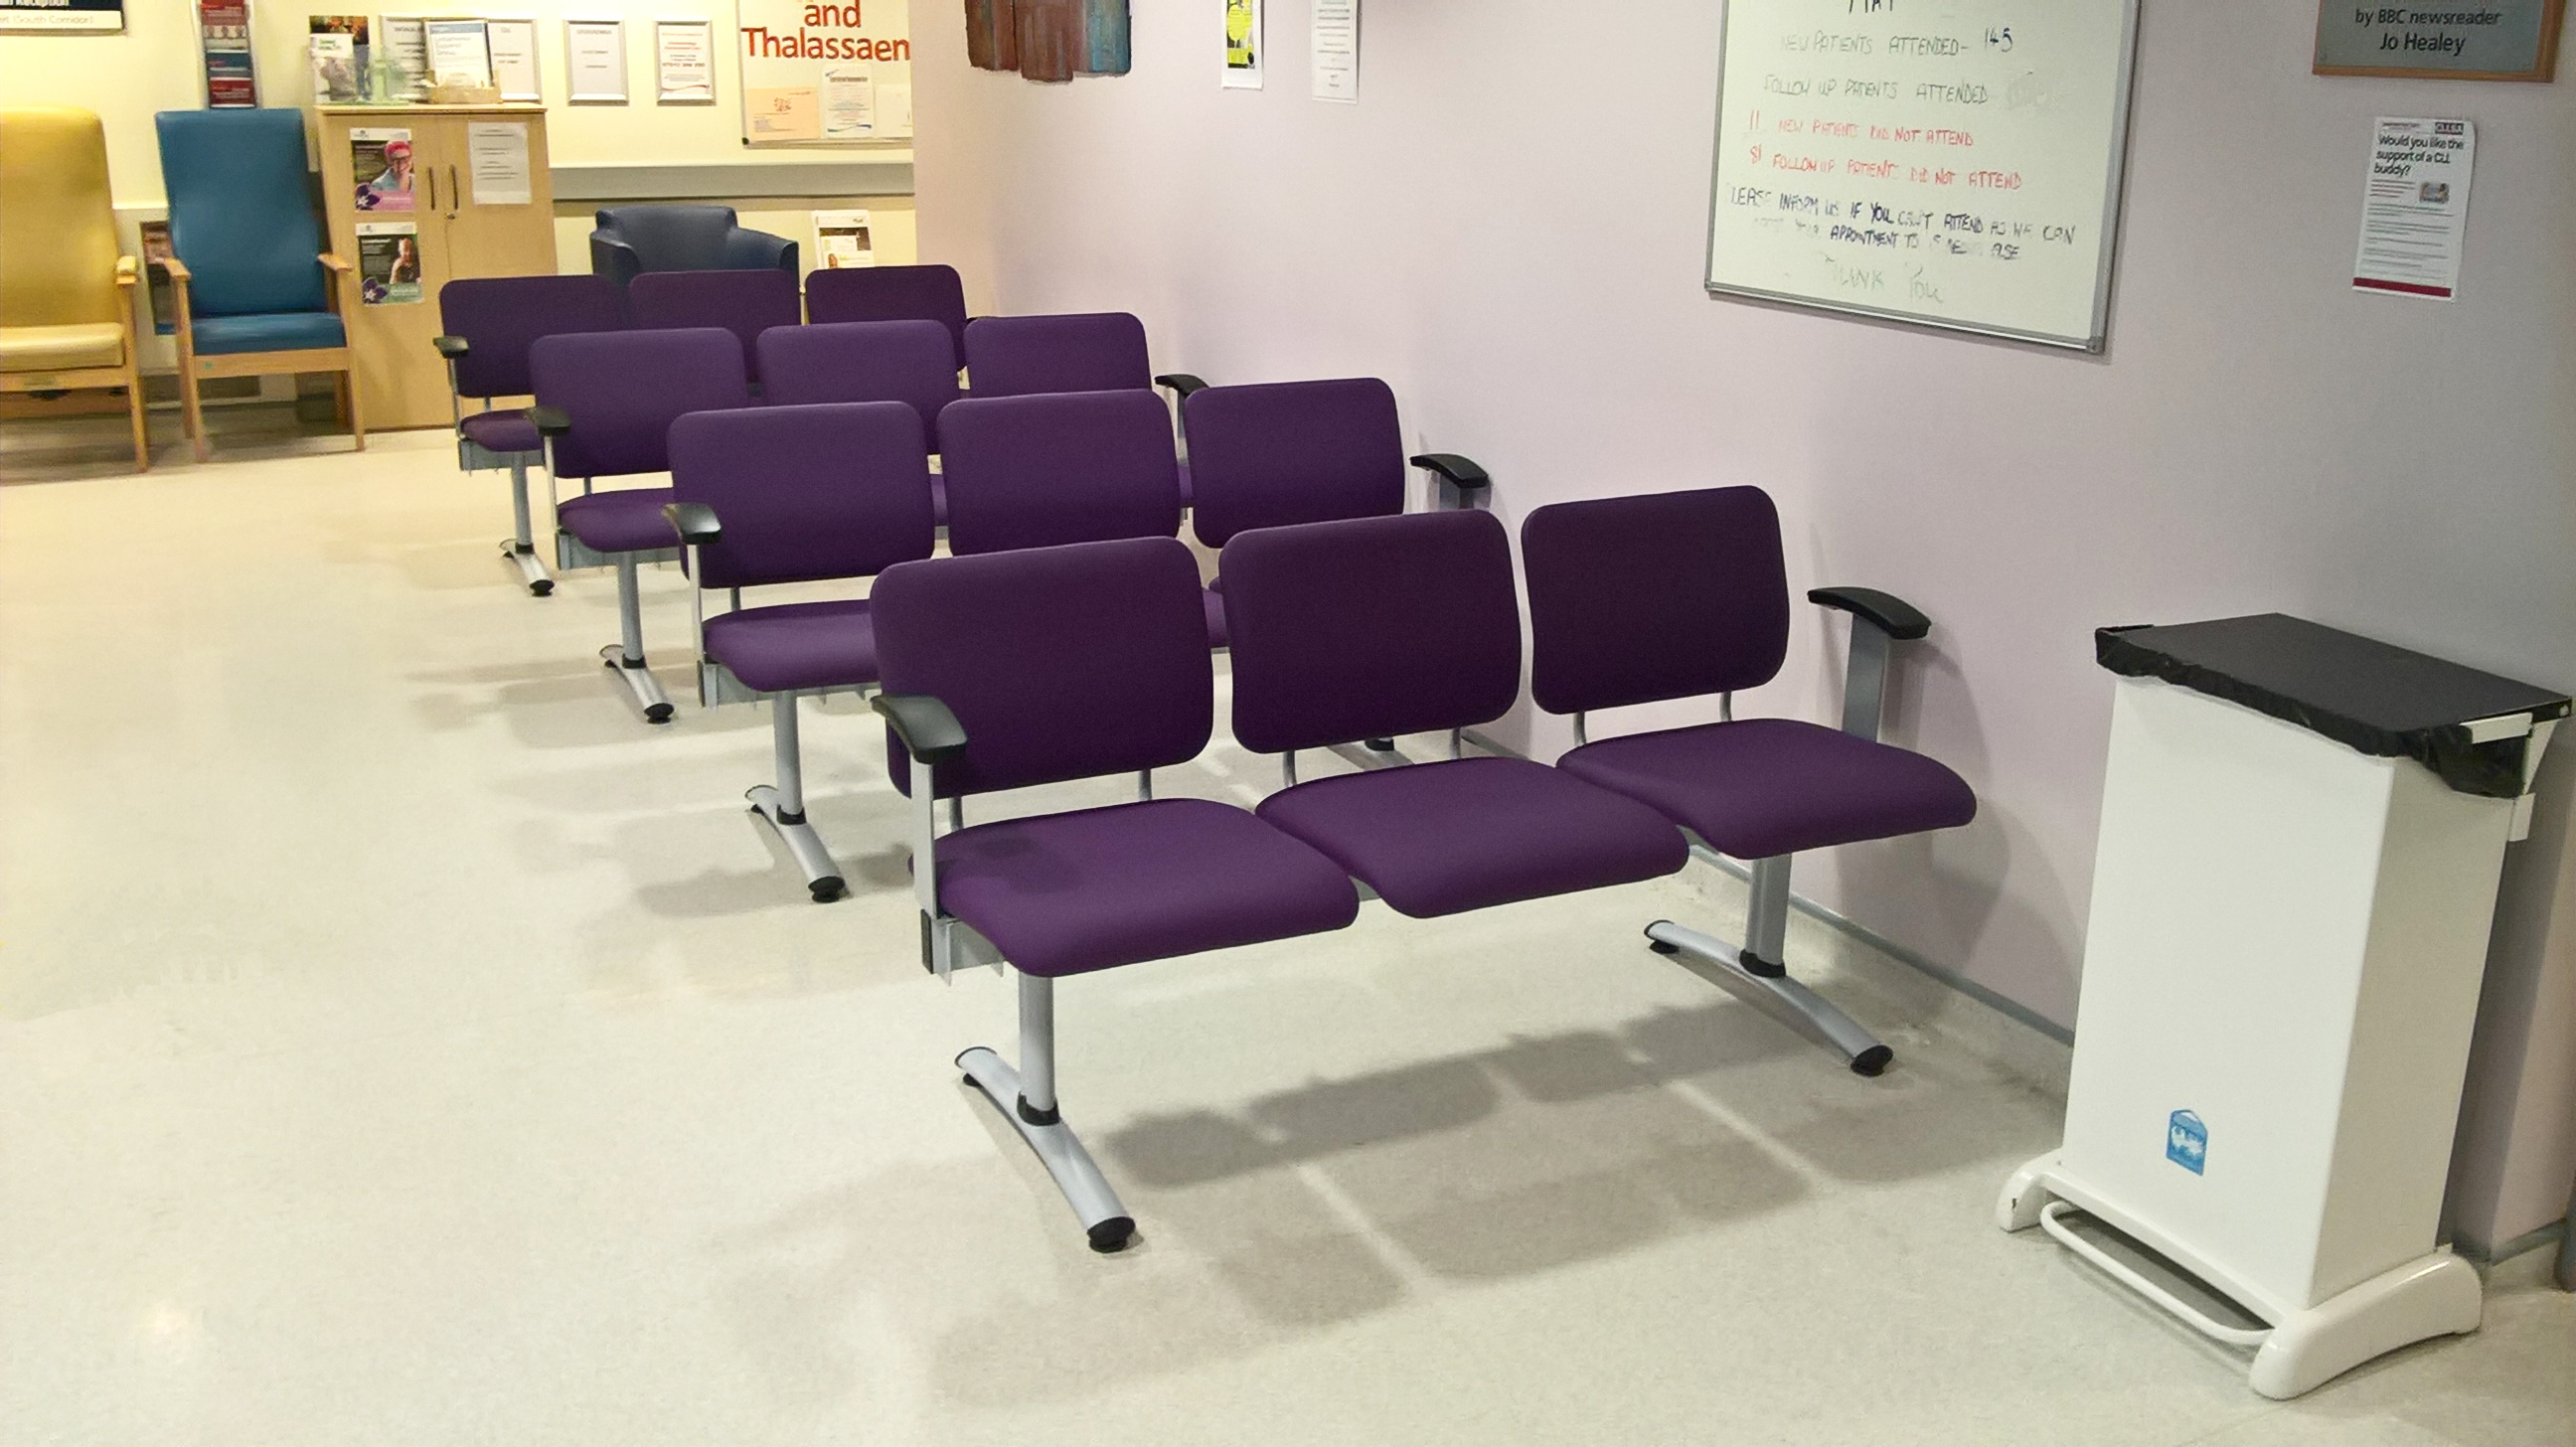 Hospital waiting room with rows of 3-seat beam waiting room chairs upholstered in purple vinyl